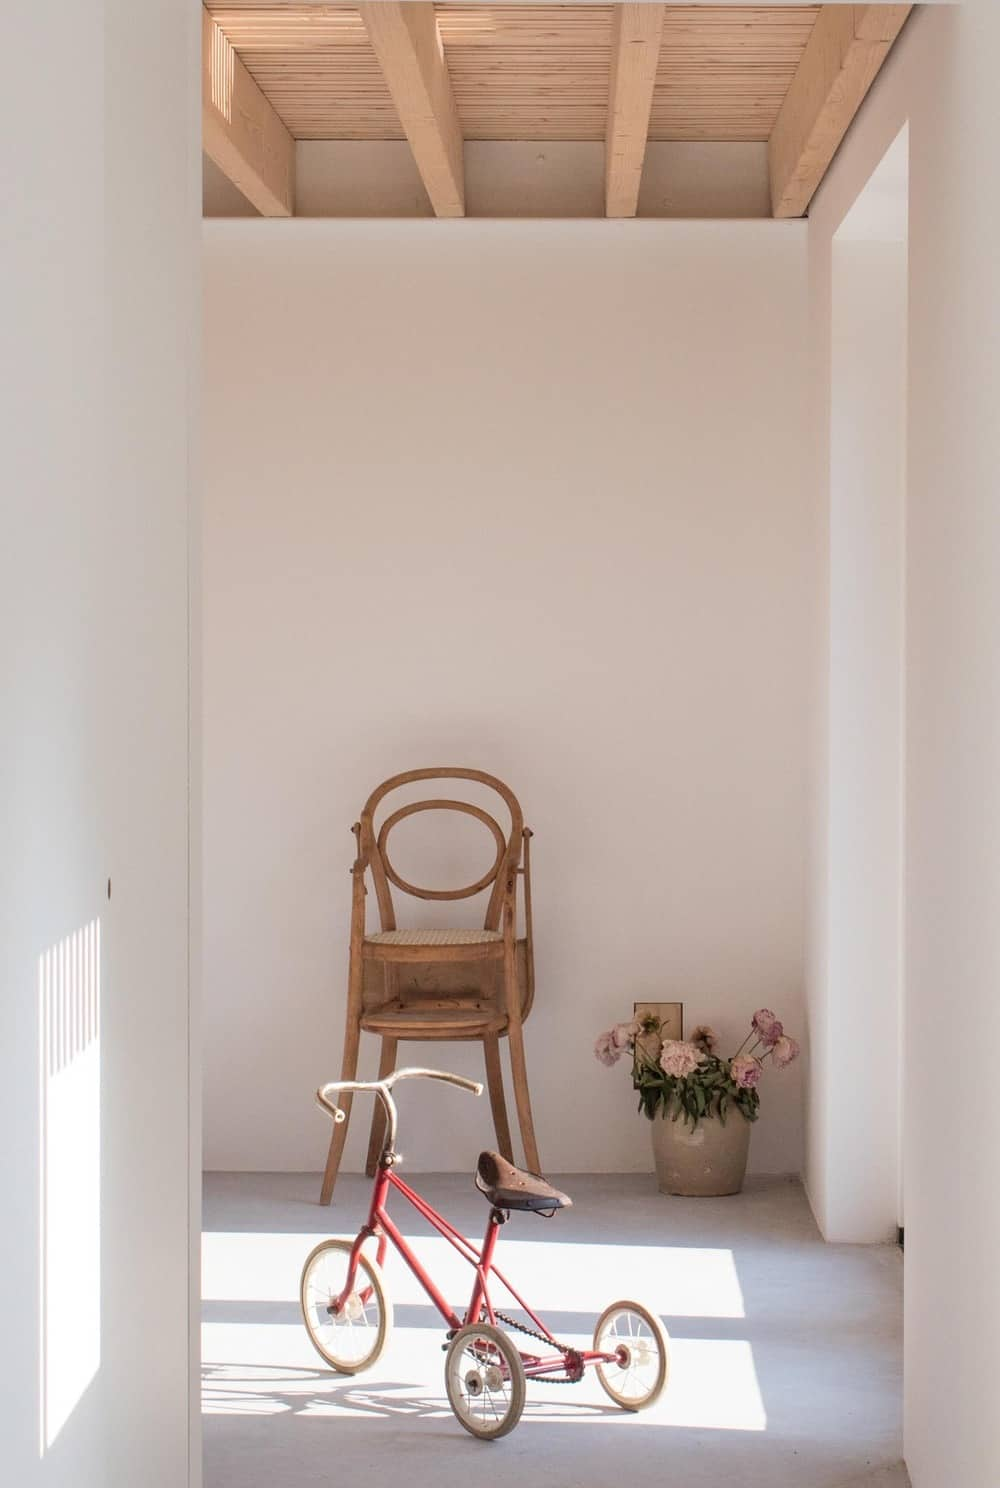 This corner of the house is adorned with a wooden chair, potted plant and a vintage kid's tricycle.